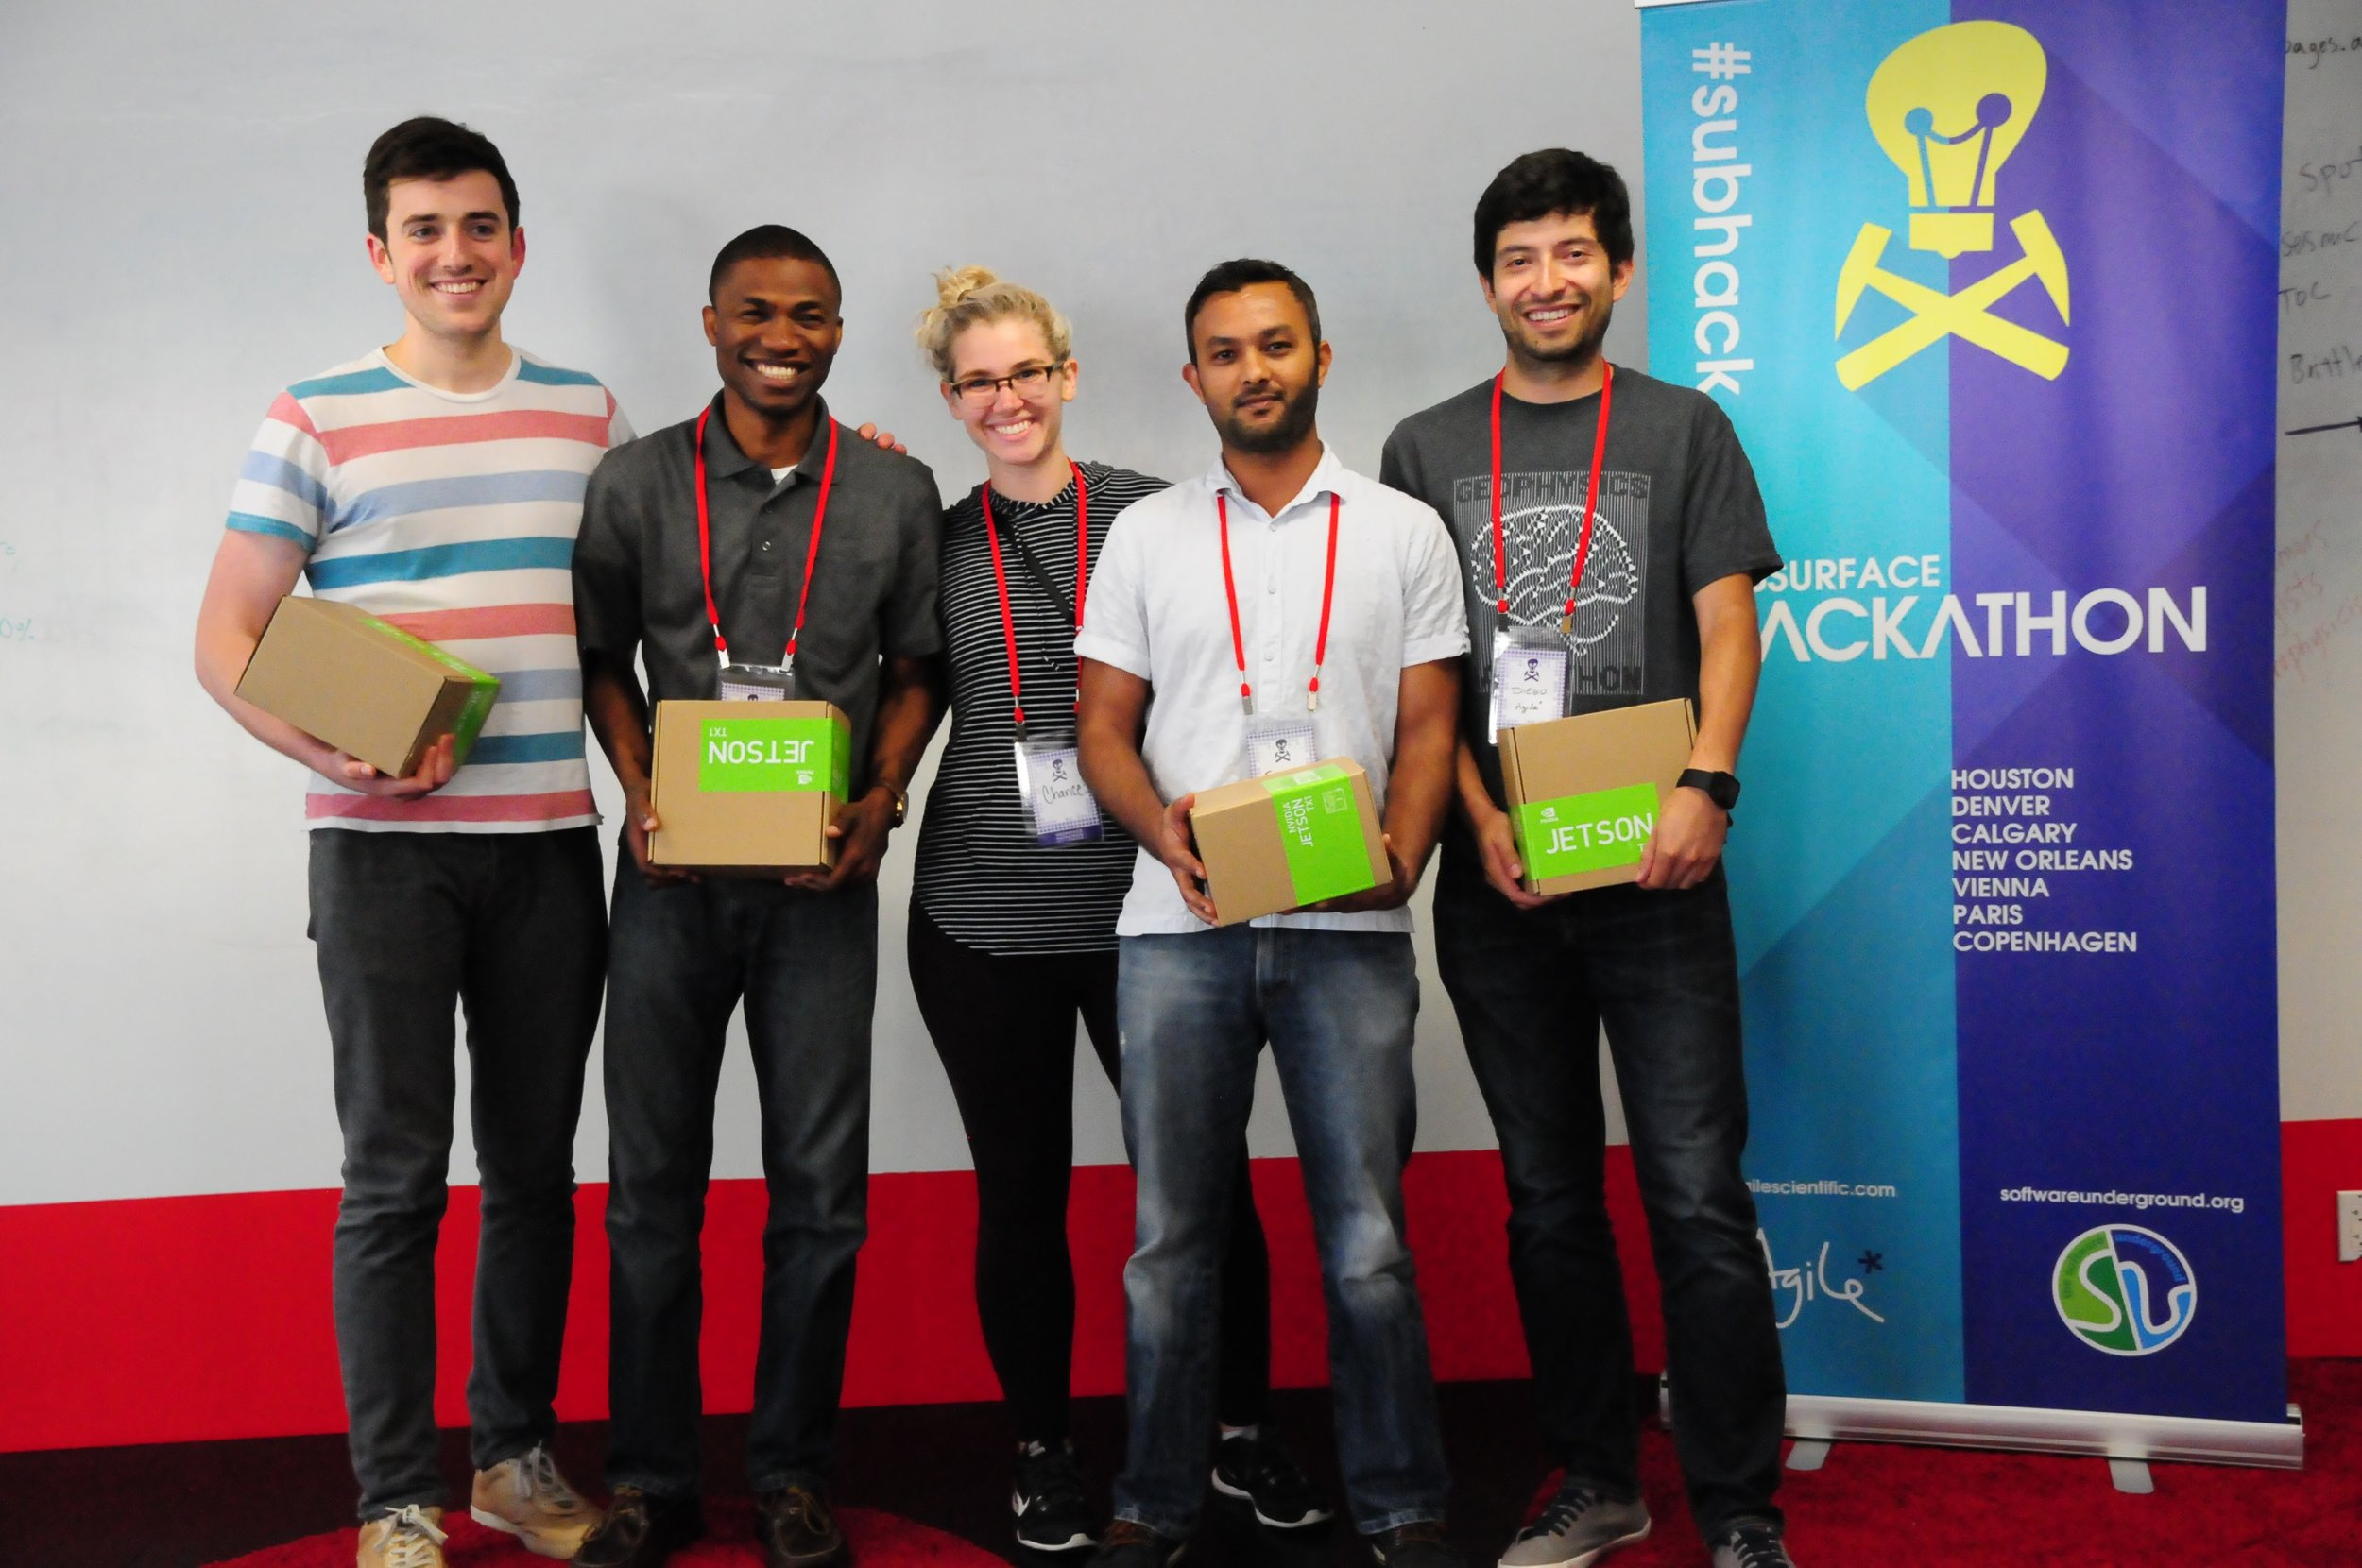 Some of the prize-winners with their prizes